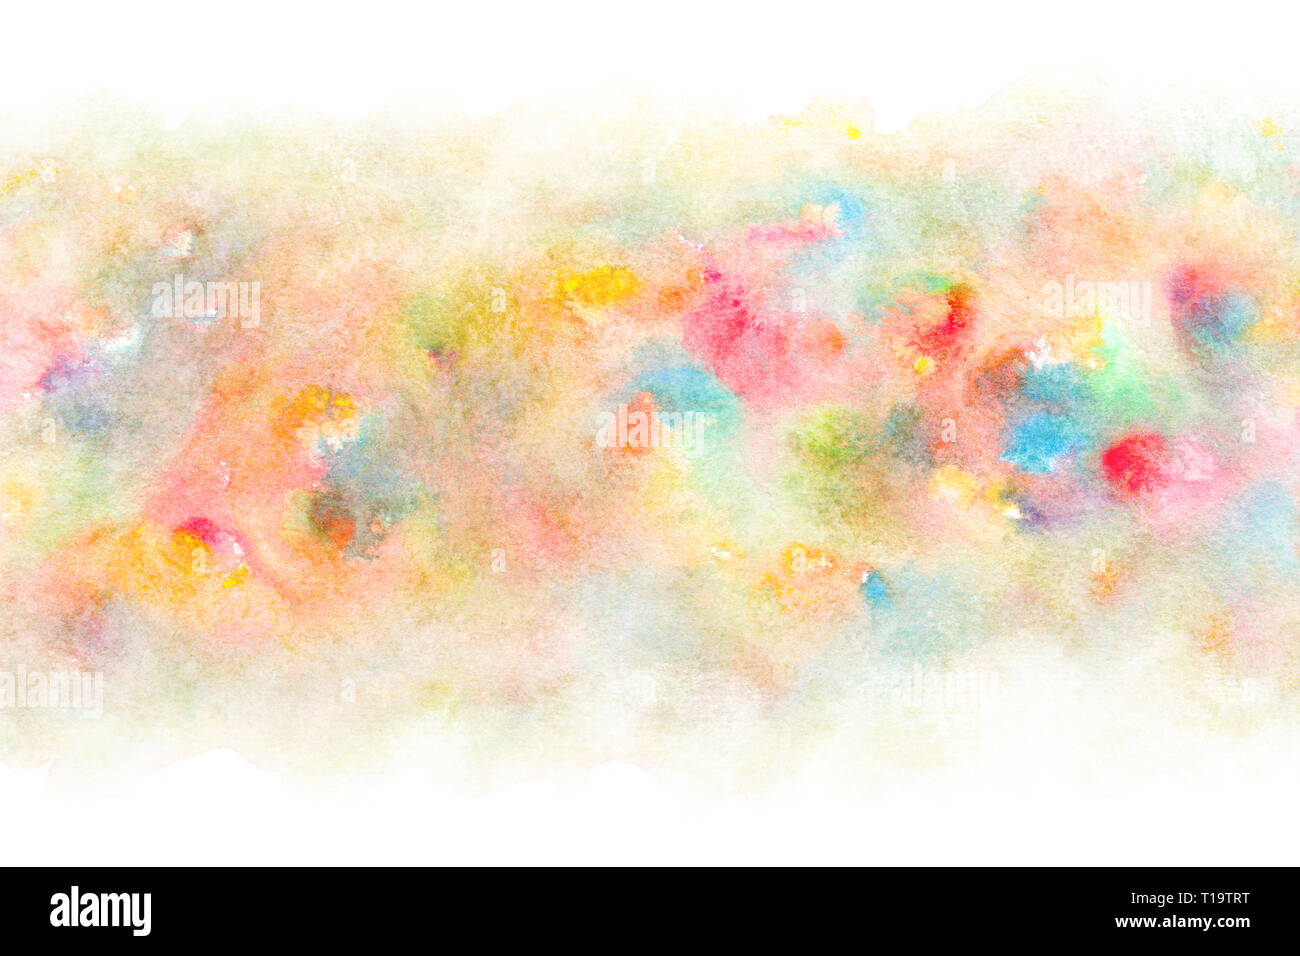 Spring Colorful Watercolor Abstract Or Vintage Paint